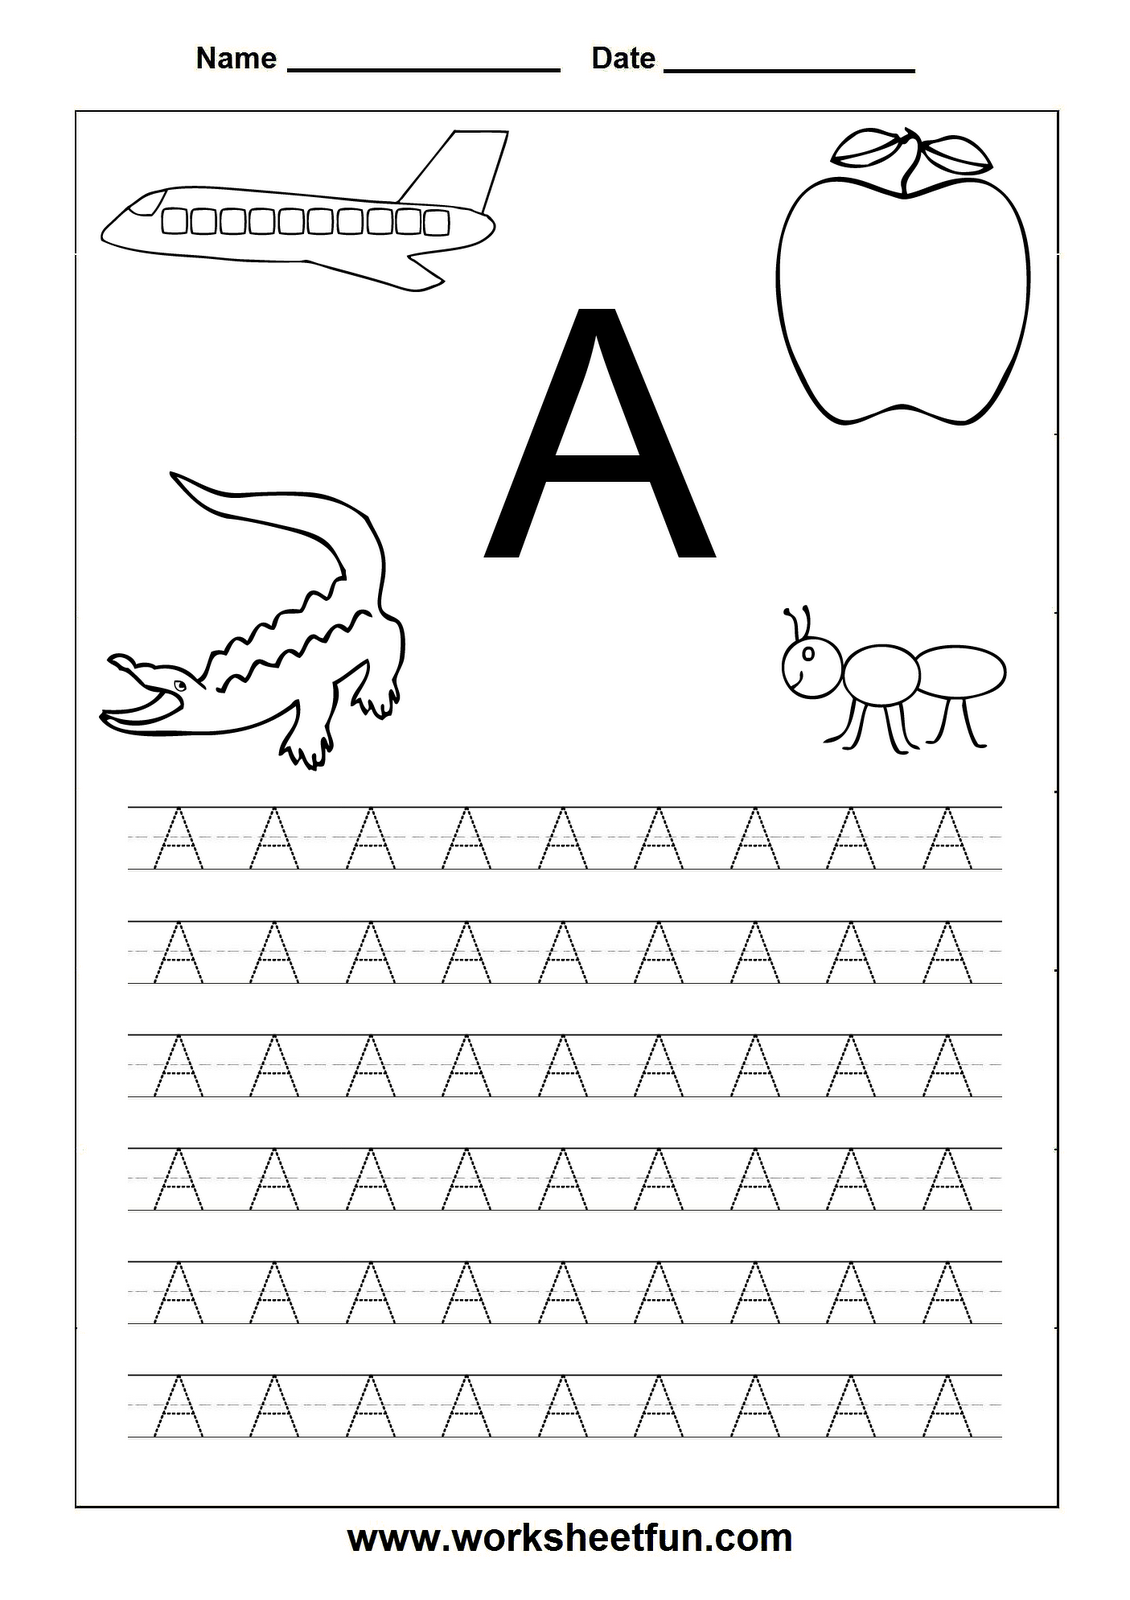 Letter Worksheets For Kindergarten Printable